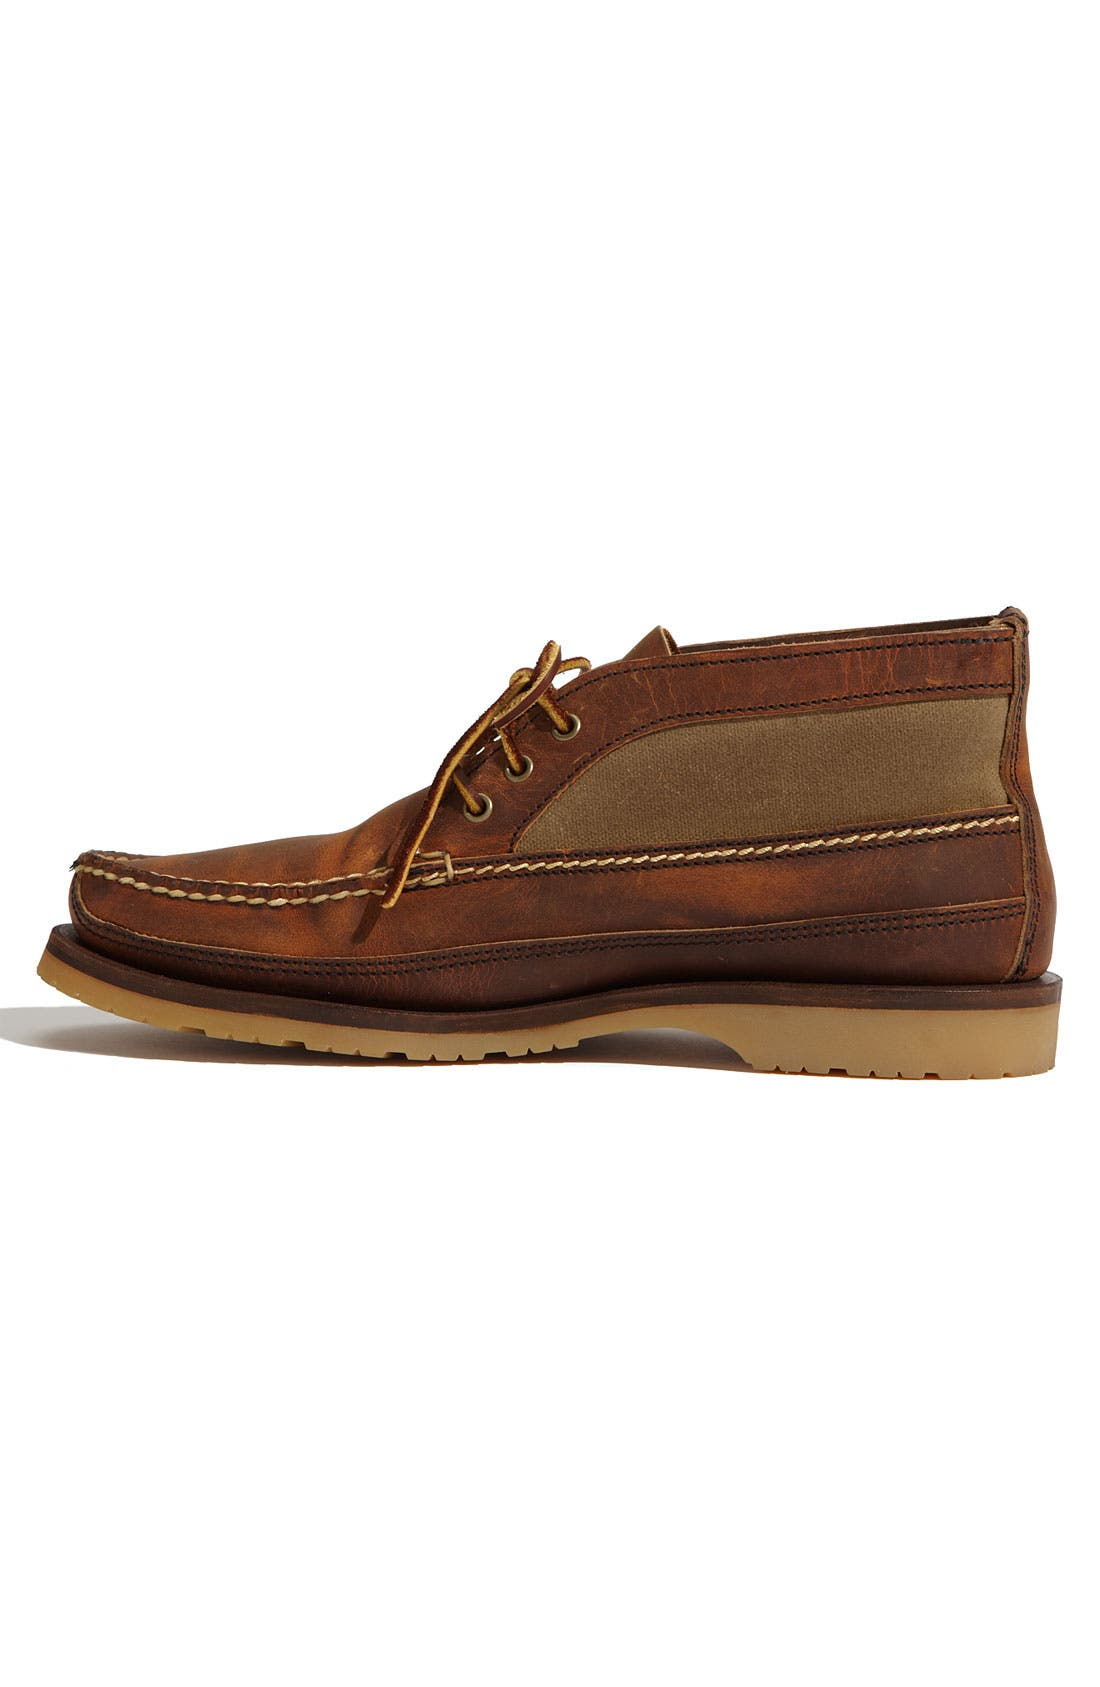 Alternate Image 2  - Red Wing 'Wabasha' Chukka Boot